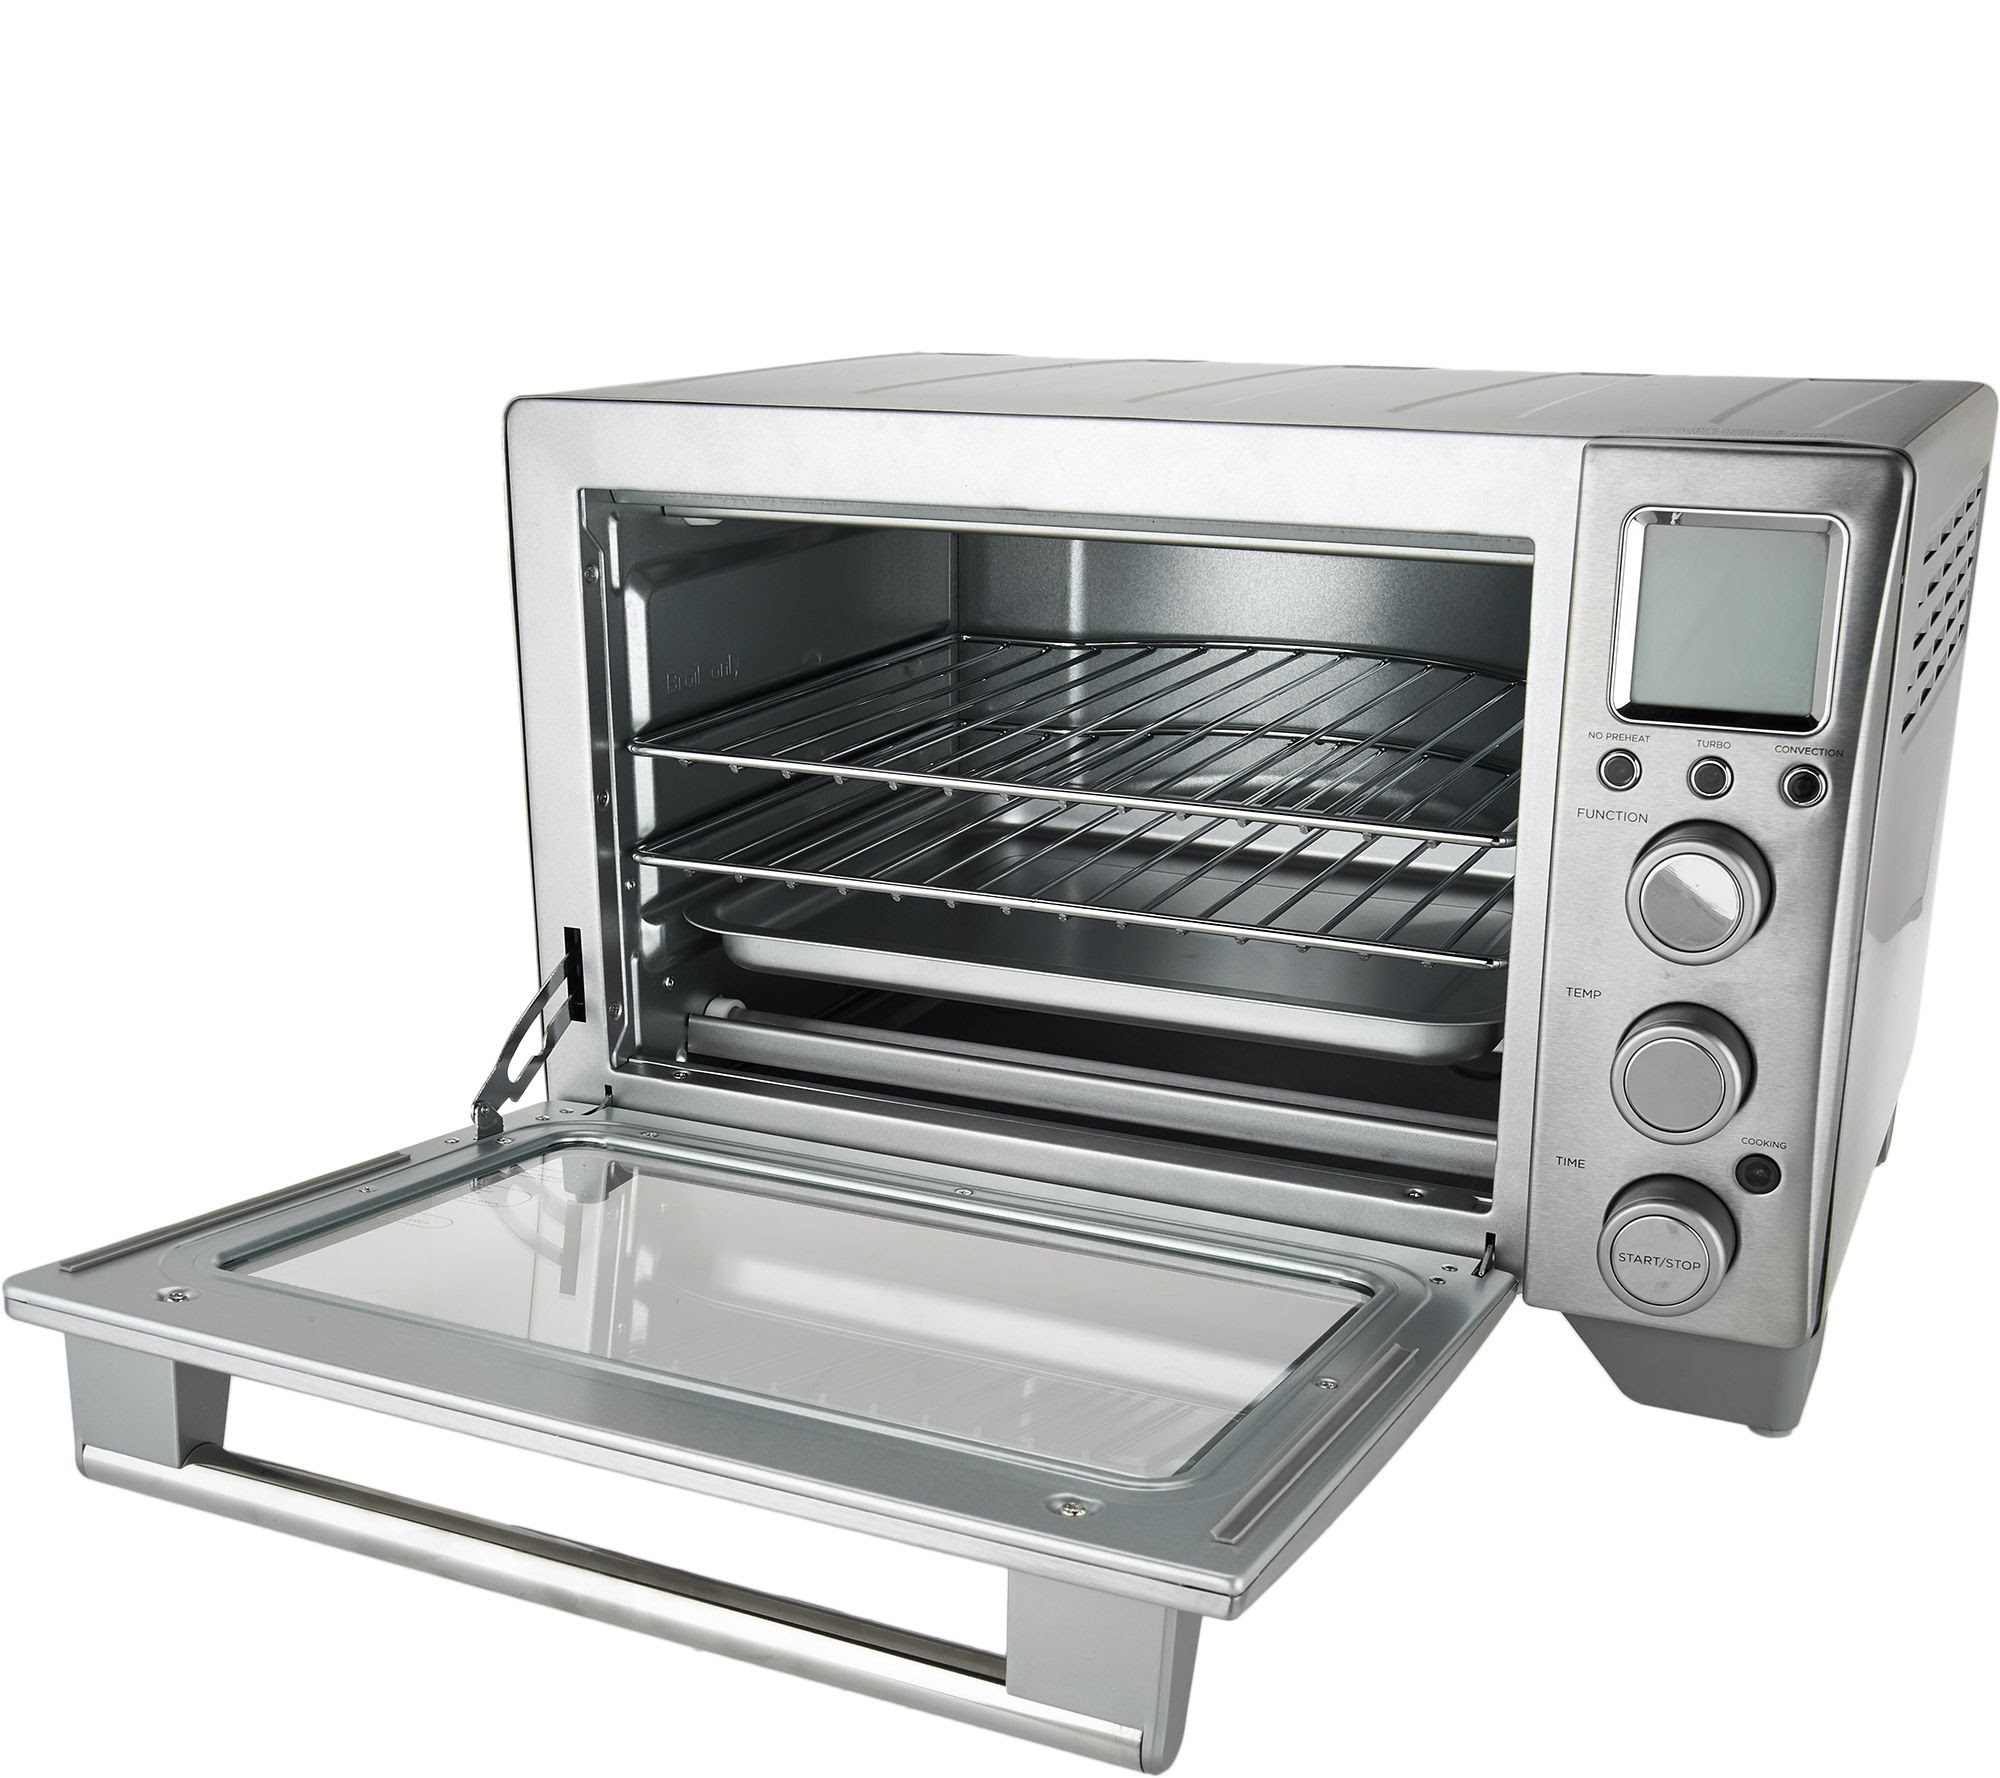 Black Decker Expert Temp Turbo Convection Oven Page 1 Qvccom